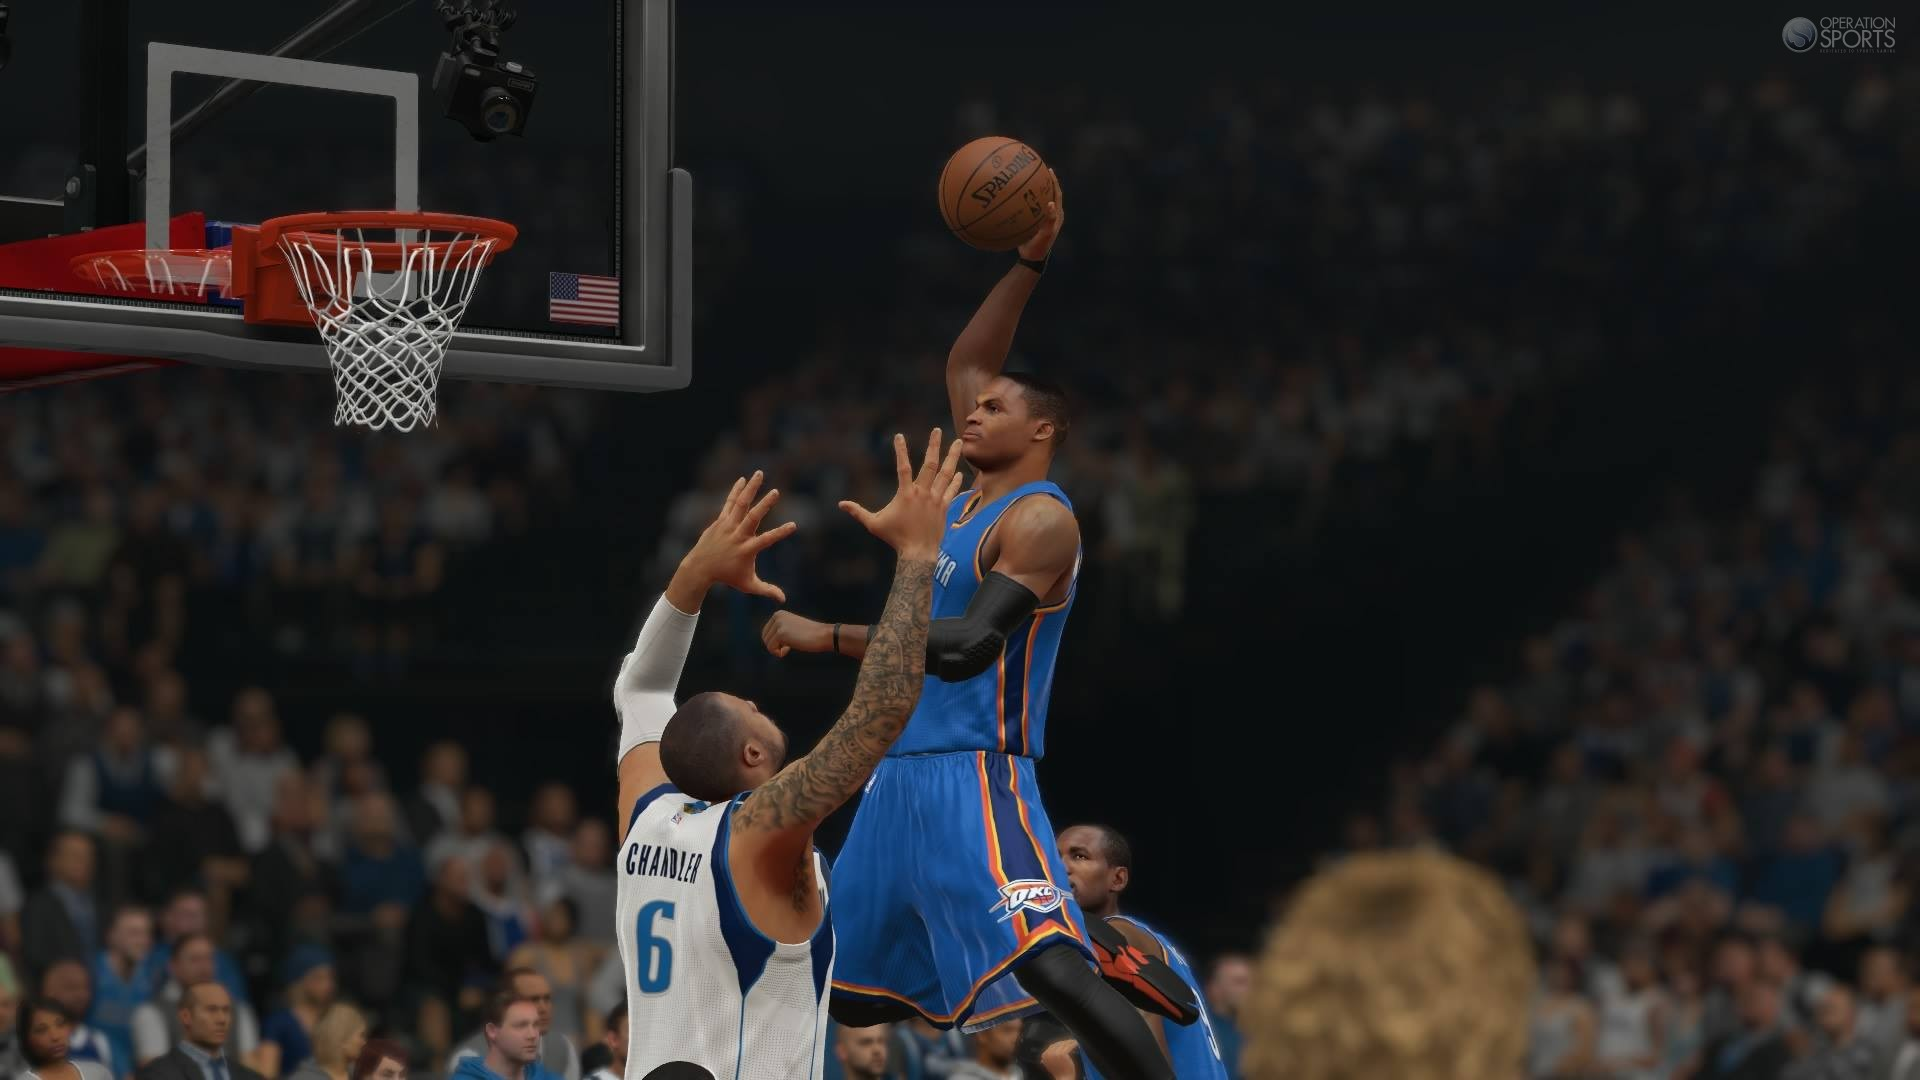 Nba 2k15 Roster Update Details 12 28 14 Westbrook Wade More Going Up Operation Sports Forums